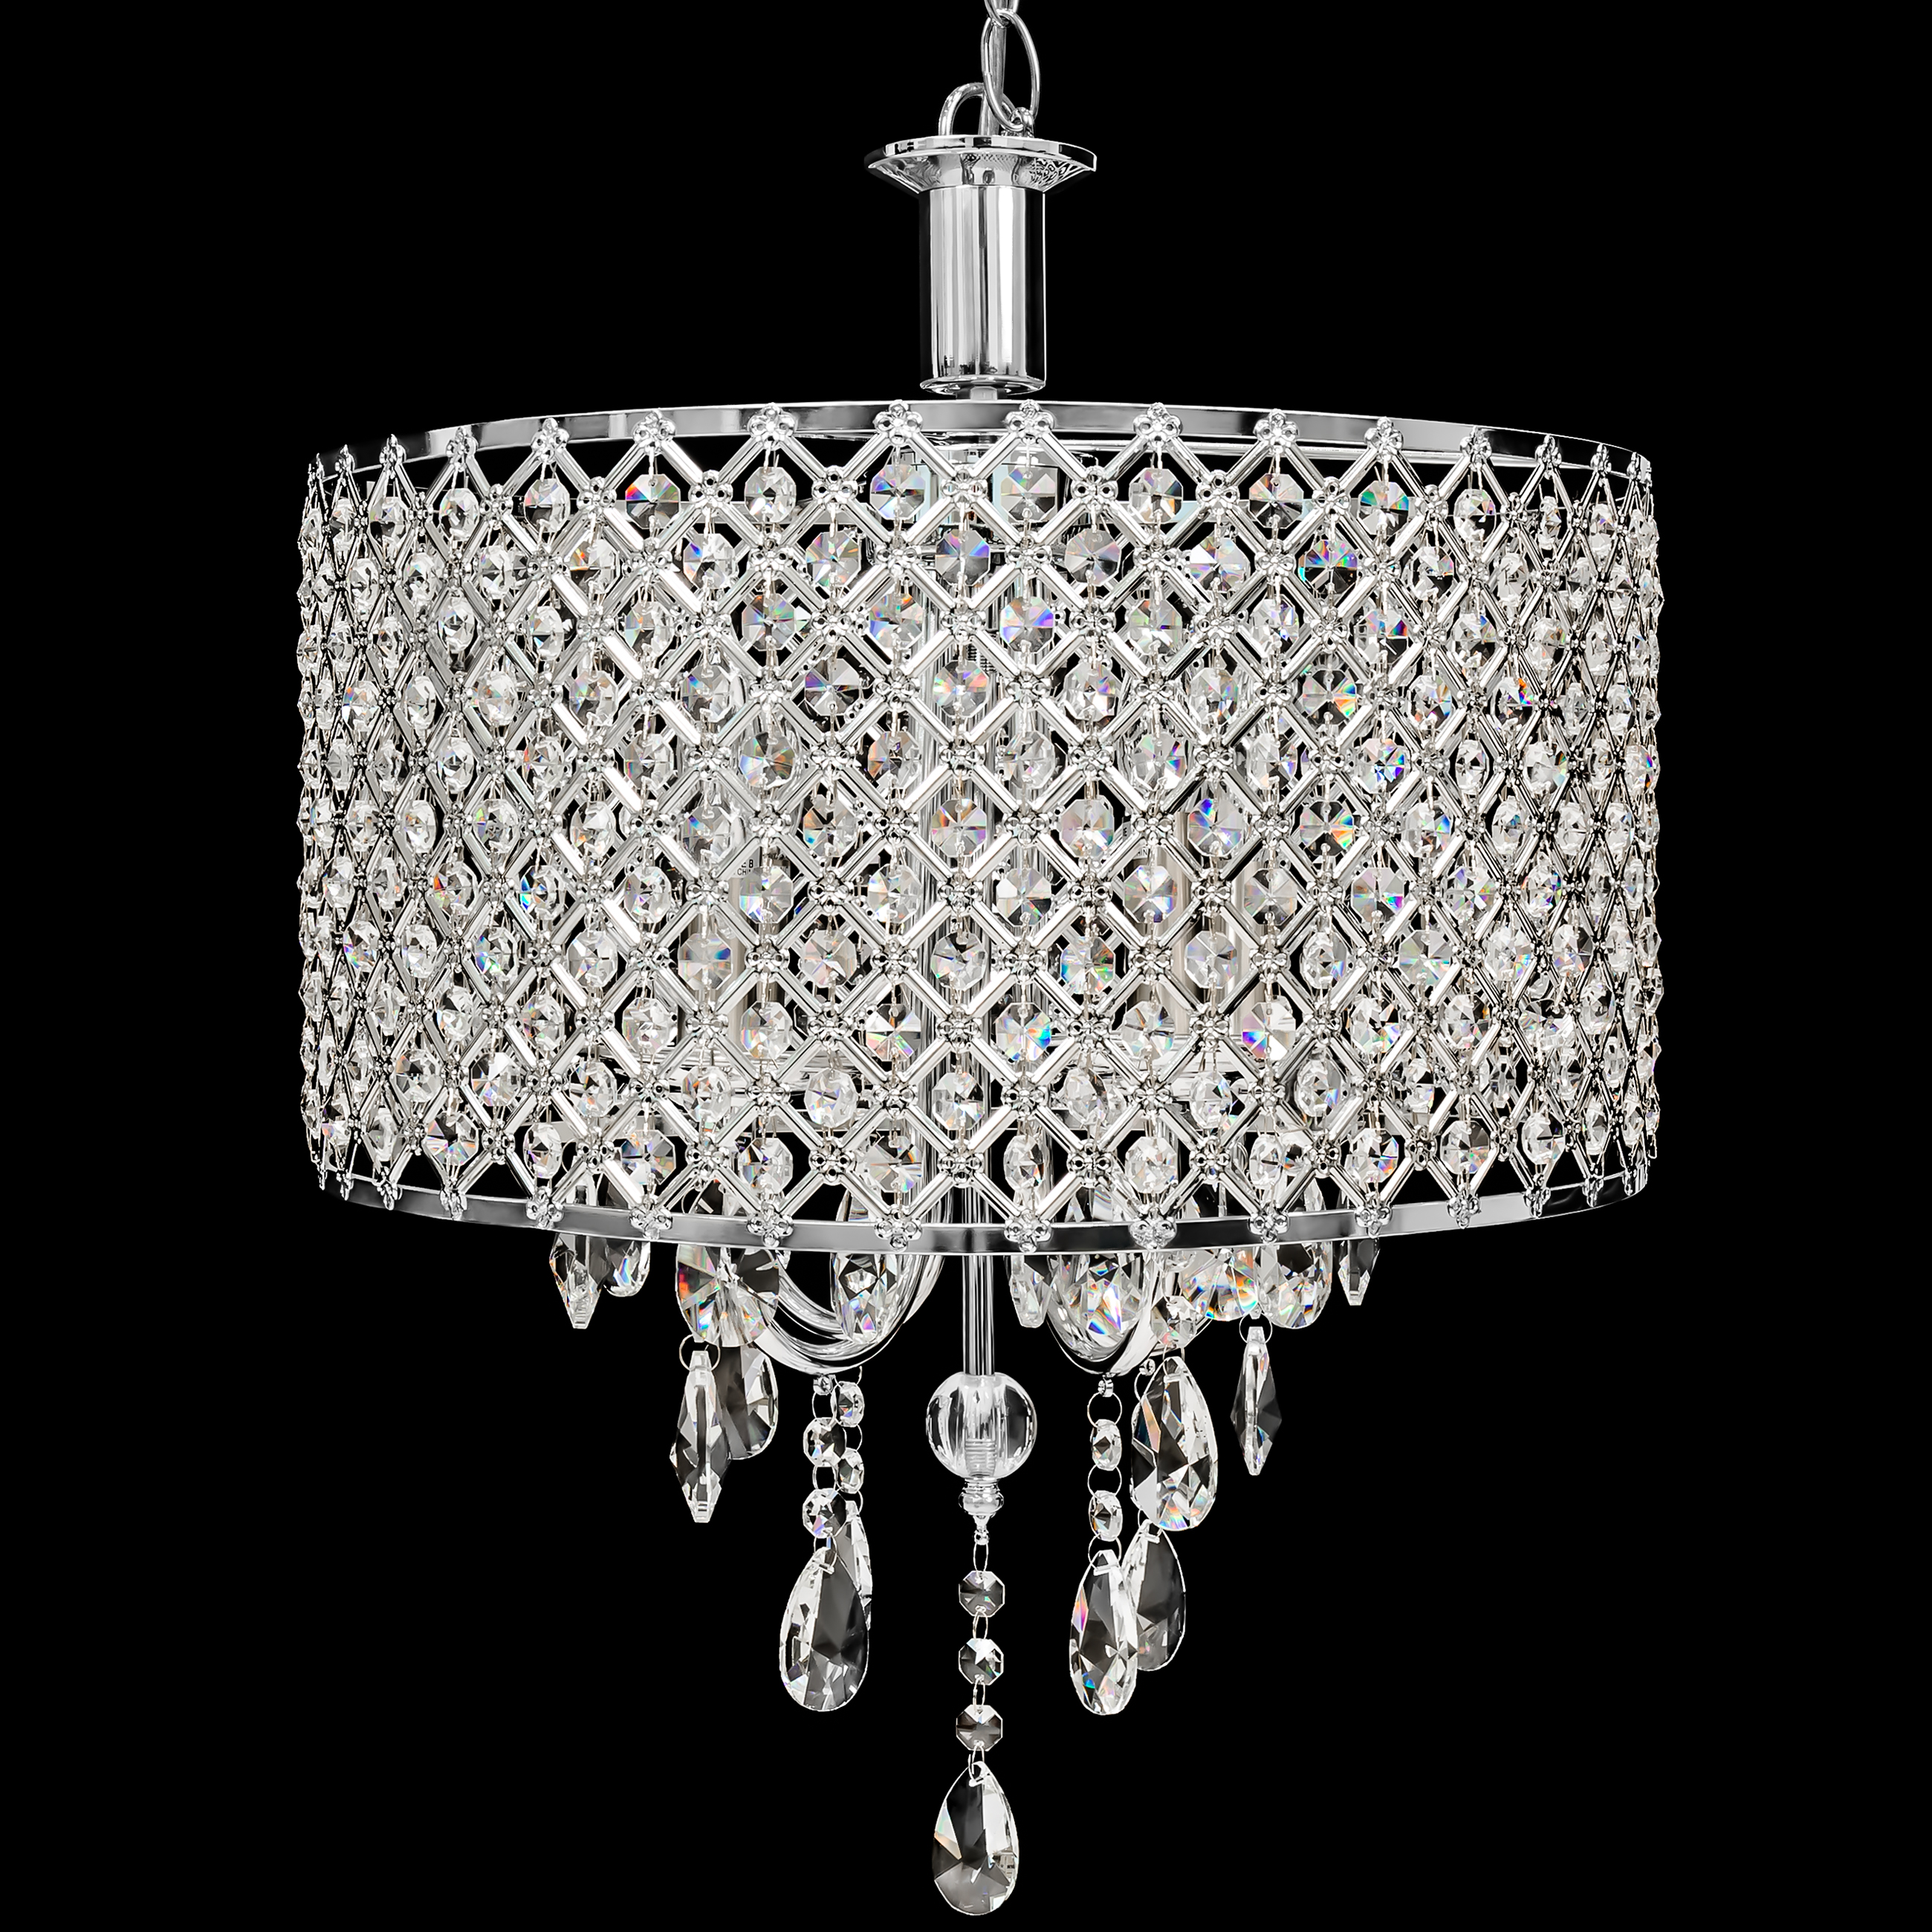 Best Choice Products 4 Pendant Dining Room Light Crystal Drop Modern Chandelier by Best Choice Products